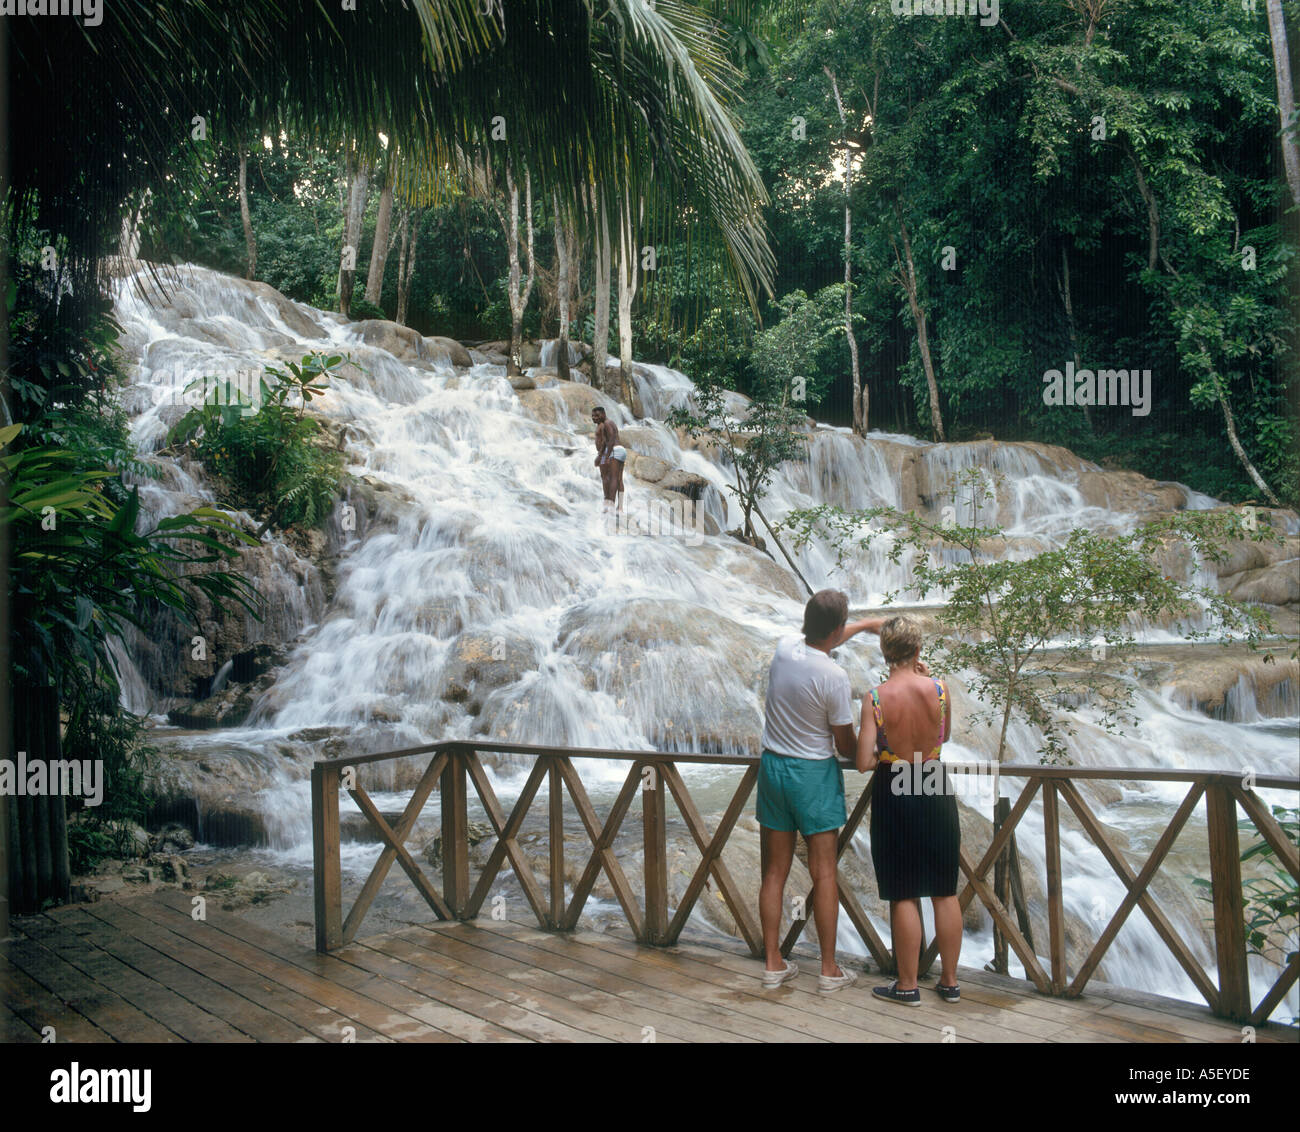 Dunns River Falls, Ocho Rios, Jamaica, Caribbean, West Indies - Stock Image